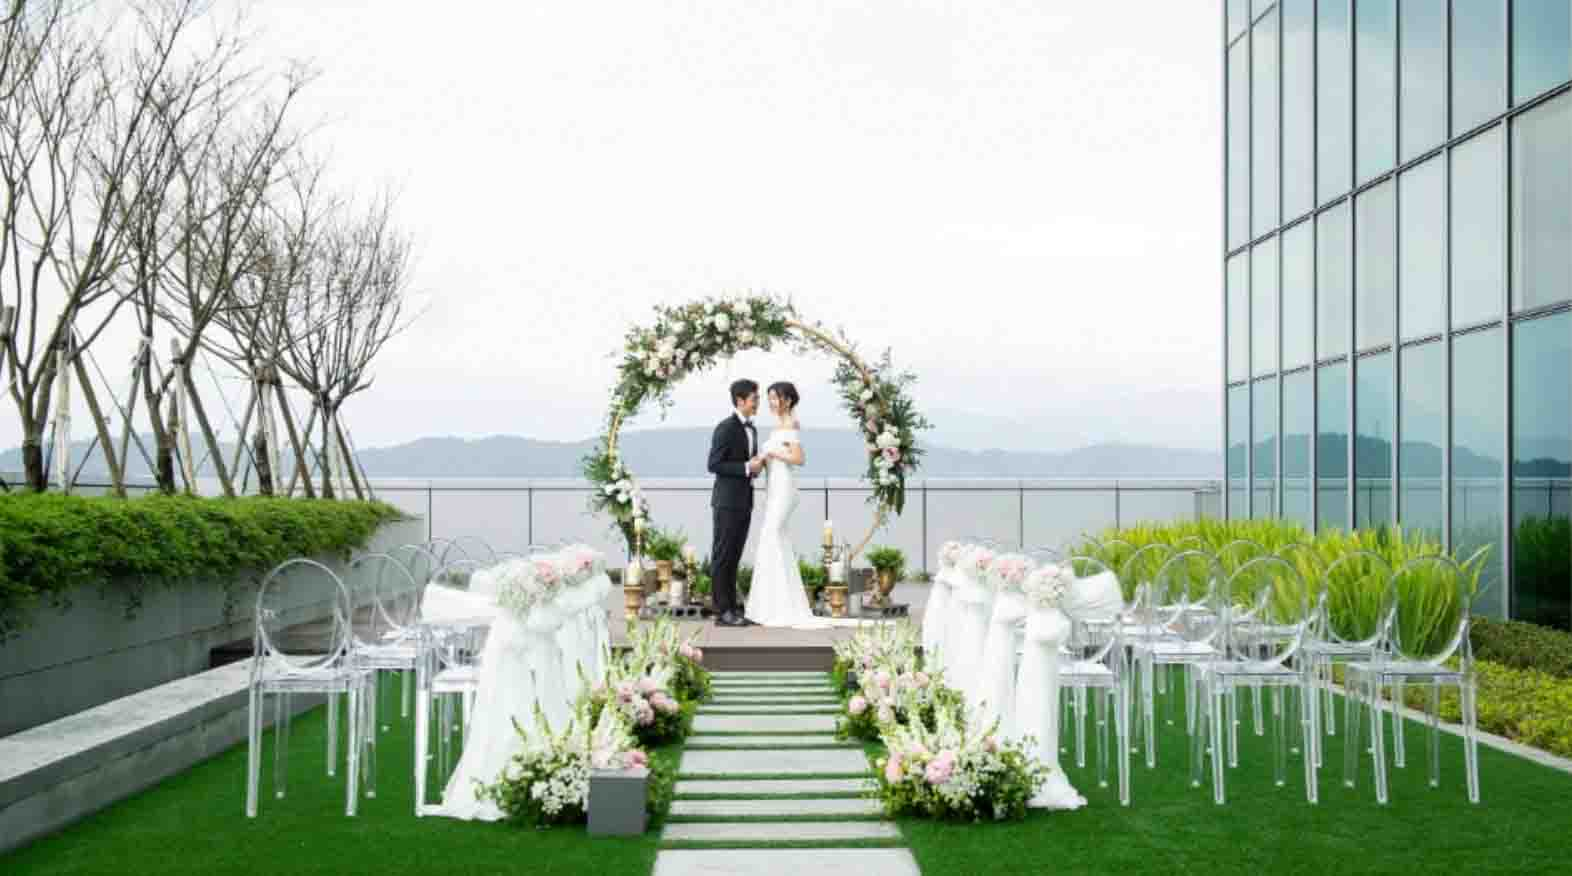 Courtyard Taipei Downtown All-Inclusive Wedding Package (Venue & F&B Costs Not Included - Dependent on Guest Count)